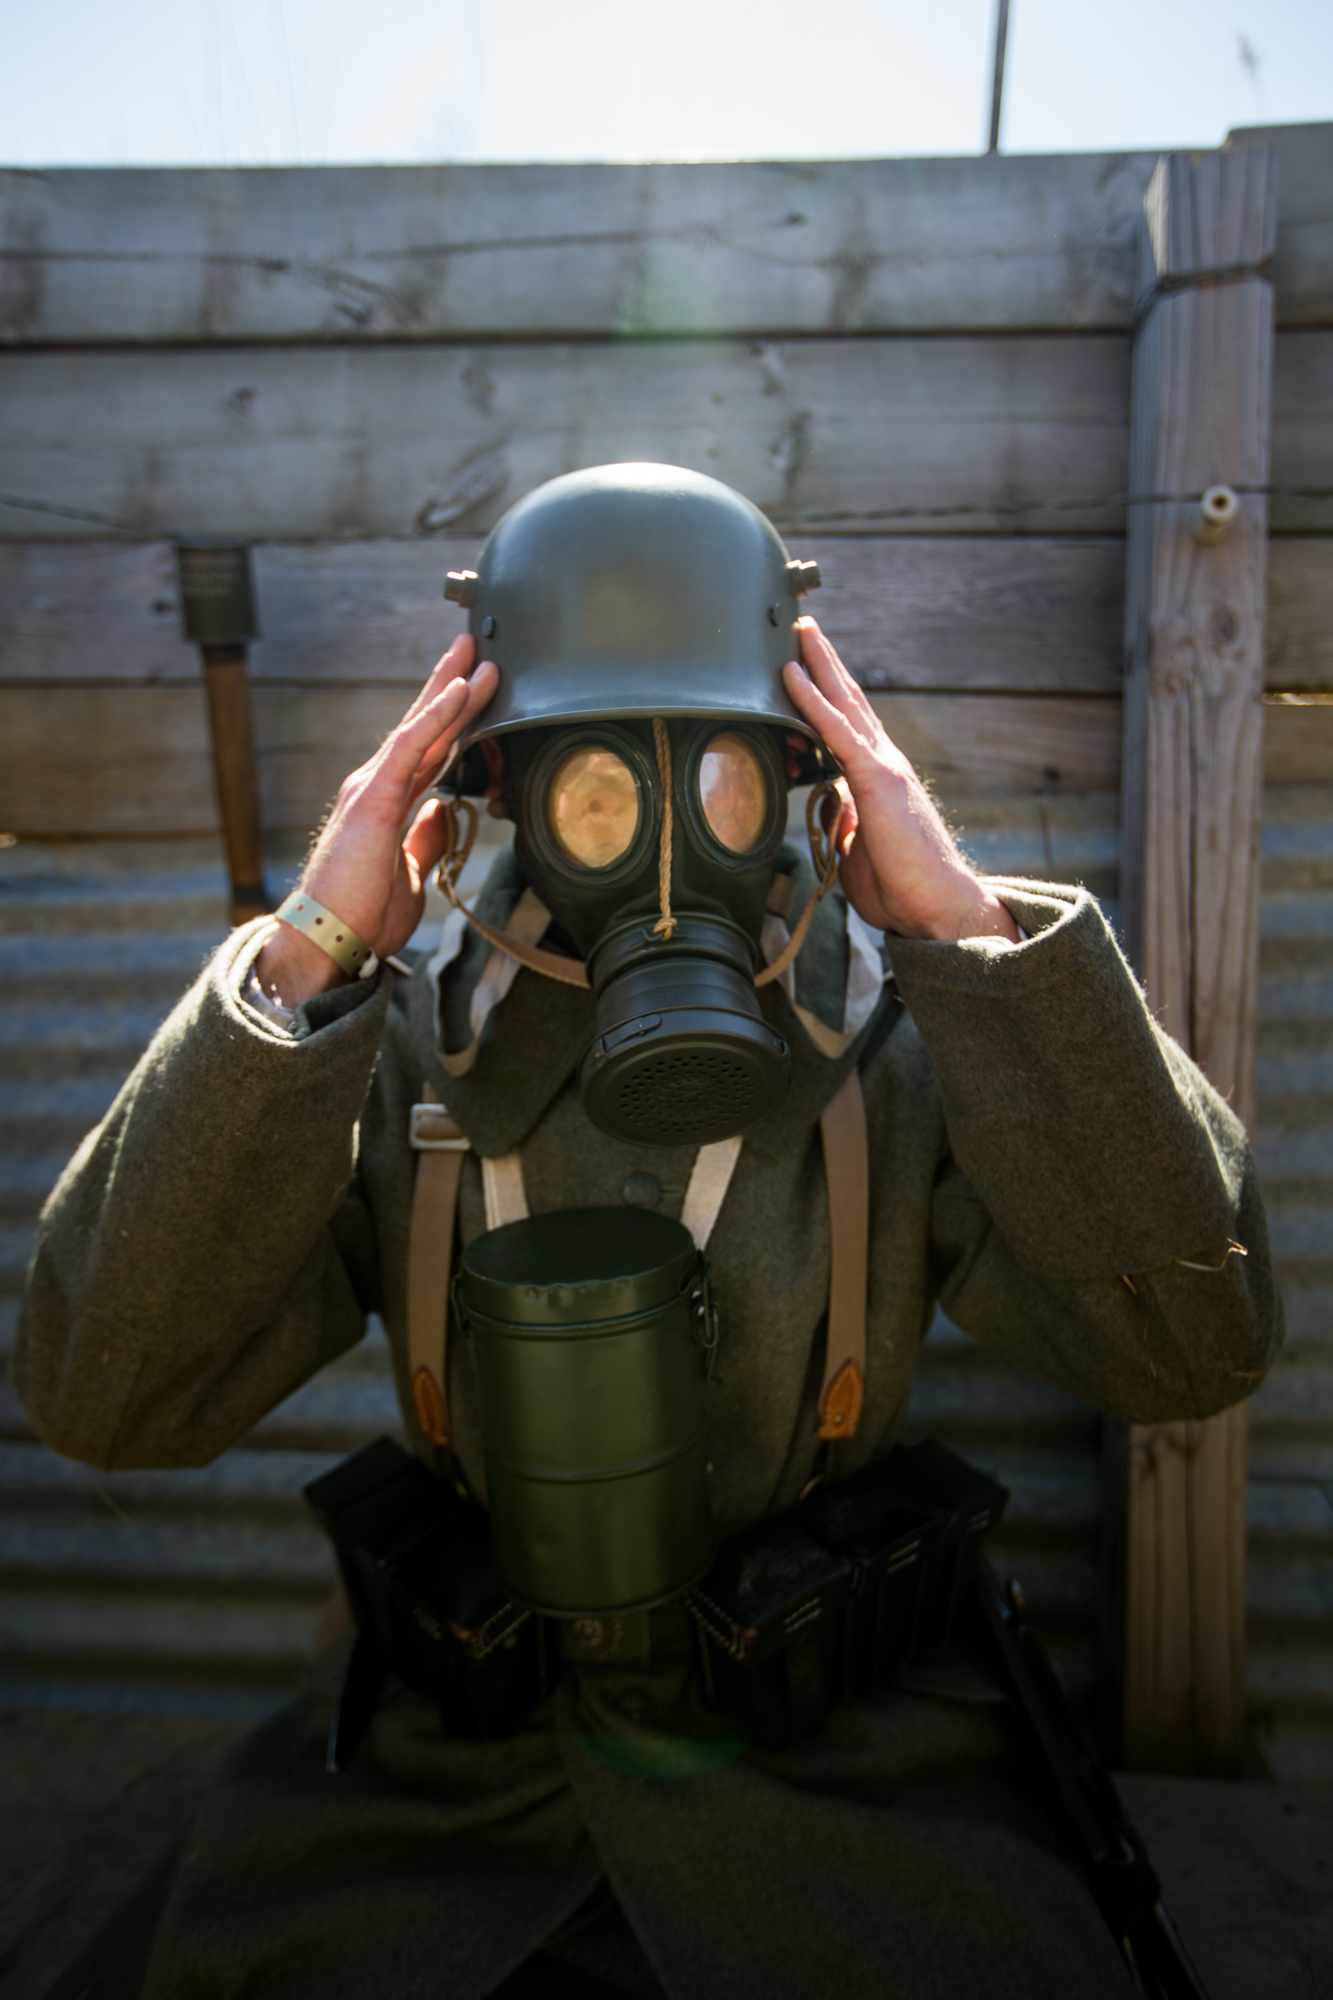 WWI reenactor Matt Lemasters of Springfield portray a German soldier with a gas mask during the 6th annual Great War event on Saturday, April 7, 2018, at Midway Village Museum in Rockford. [SCOTT P. YATES/RRSTAR.COM STAFF]